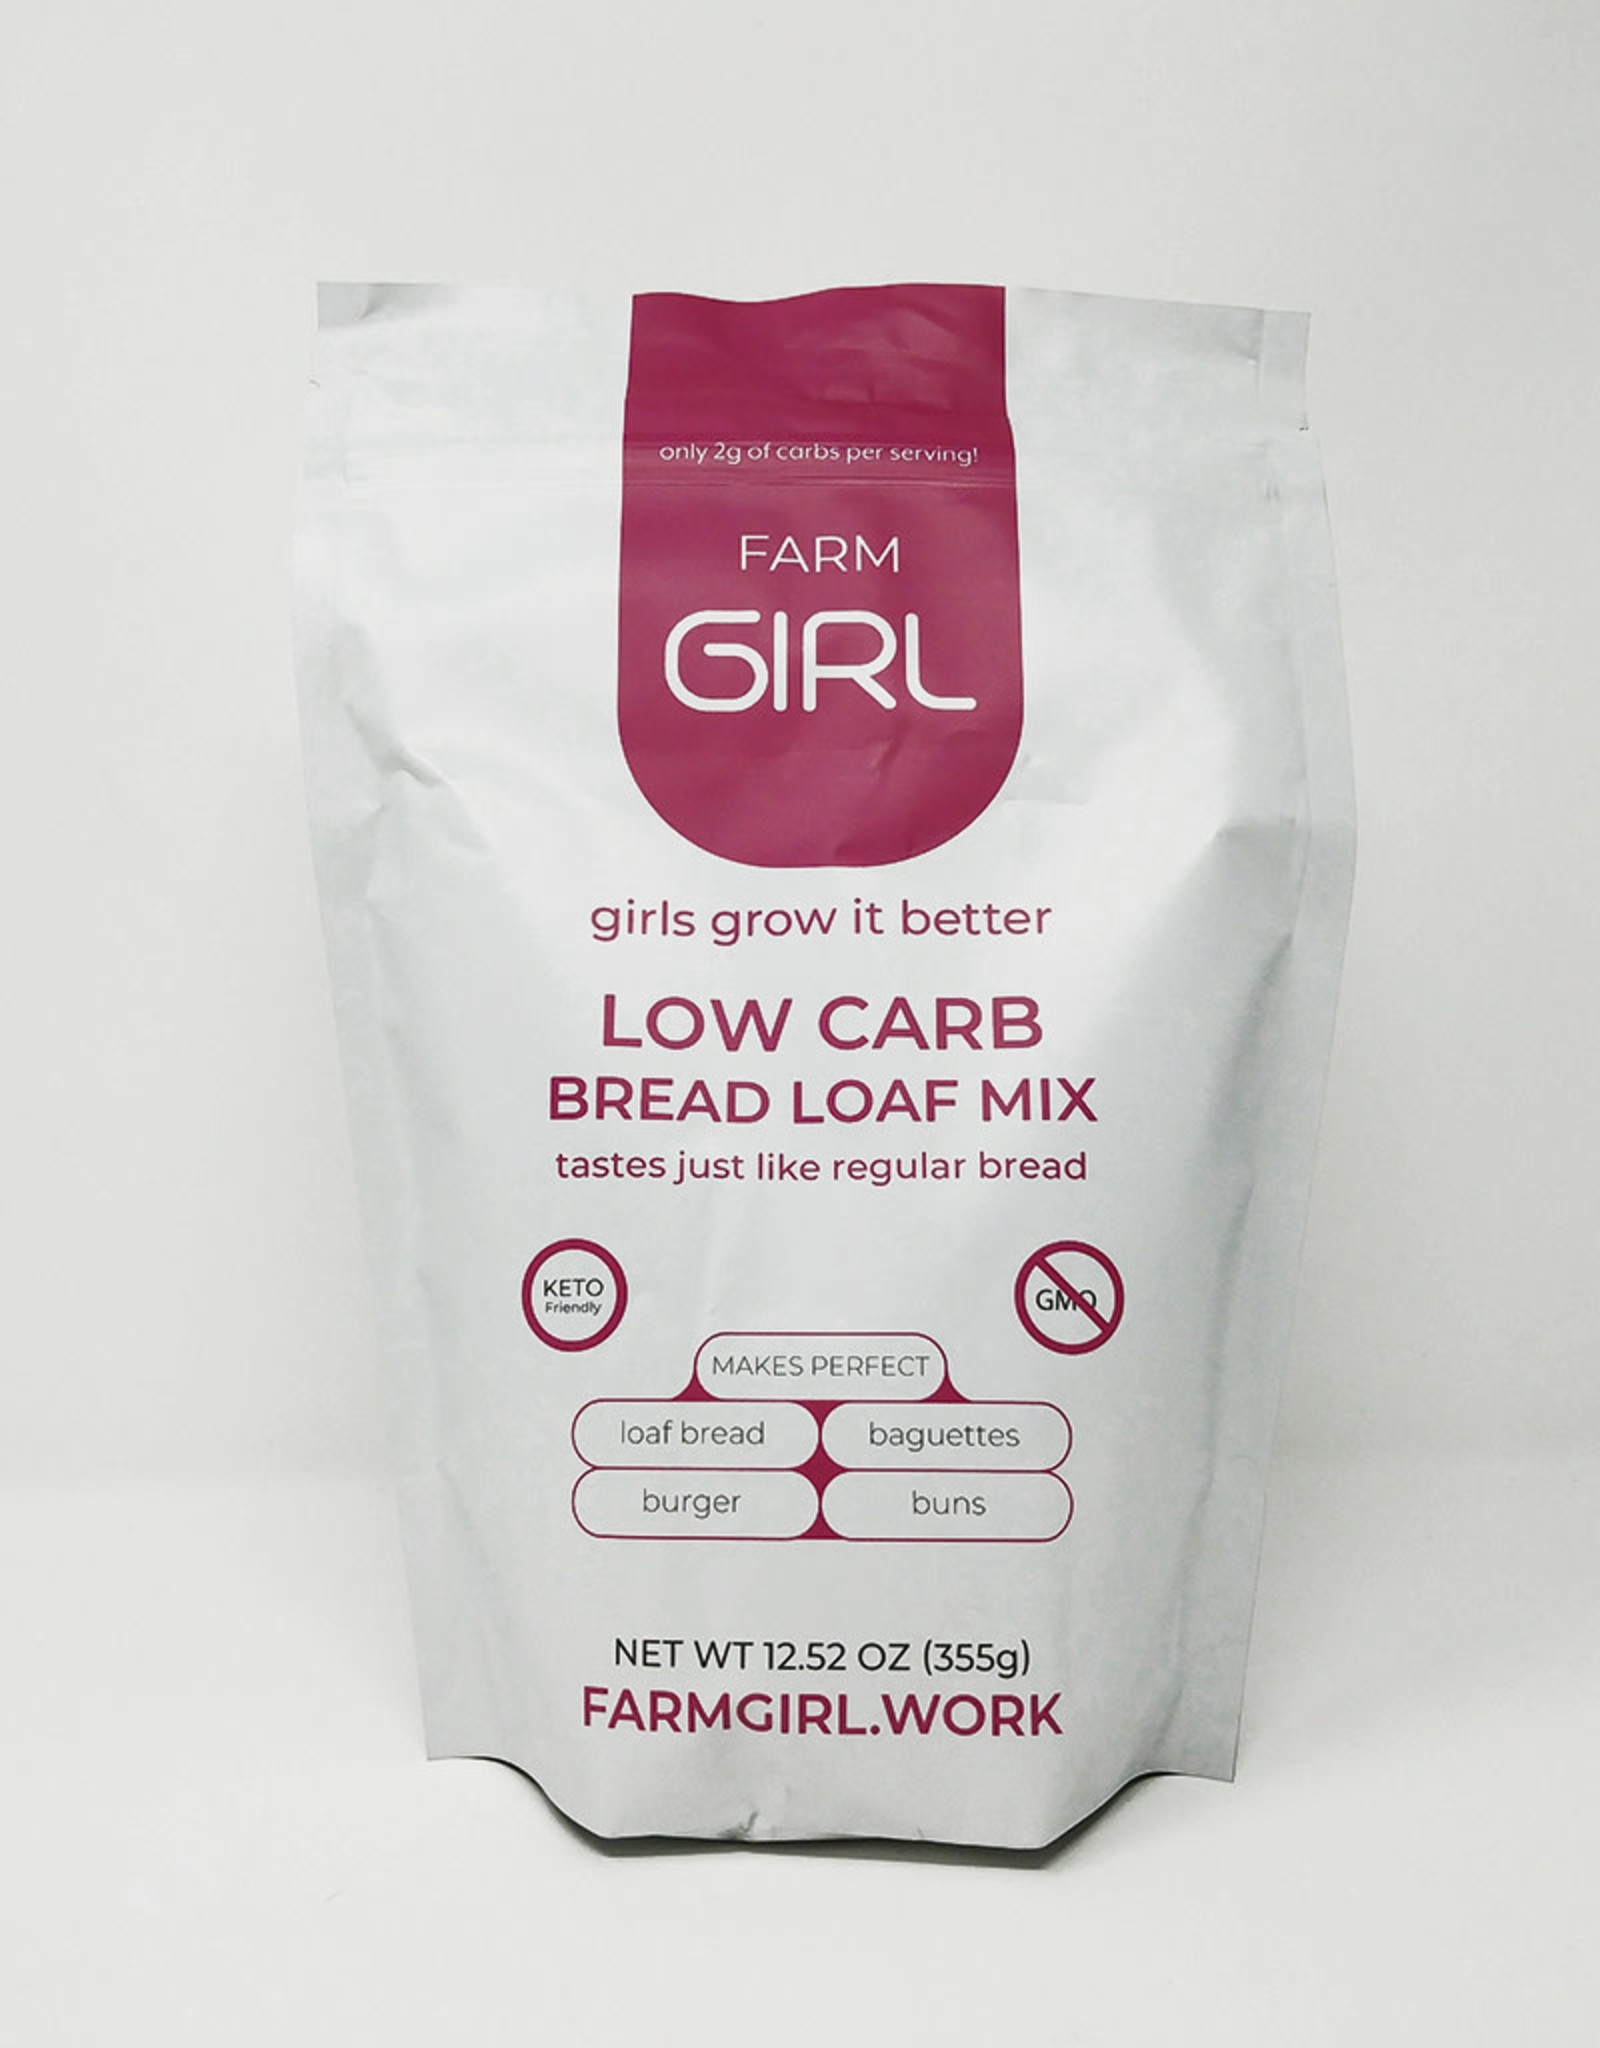 Farm Girl Farm Girl - Low Carb Bread Loaf Mix (355g)